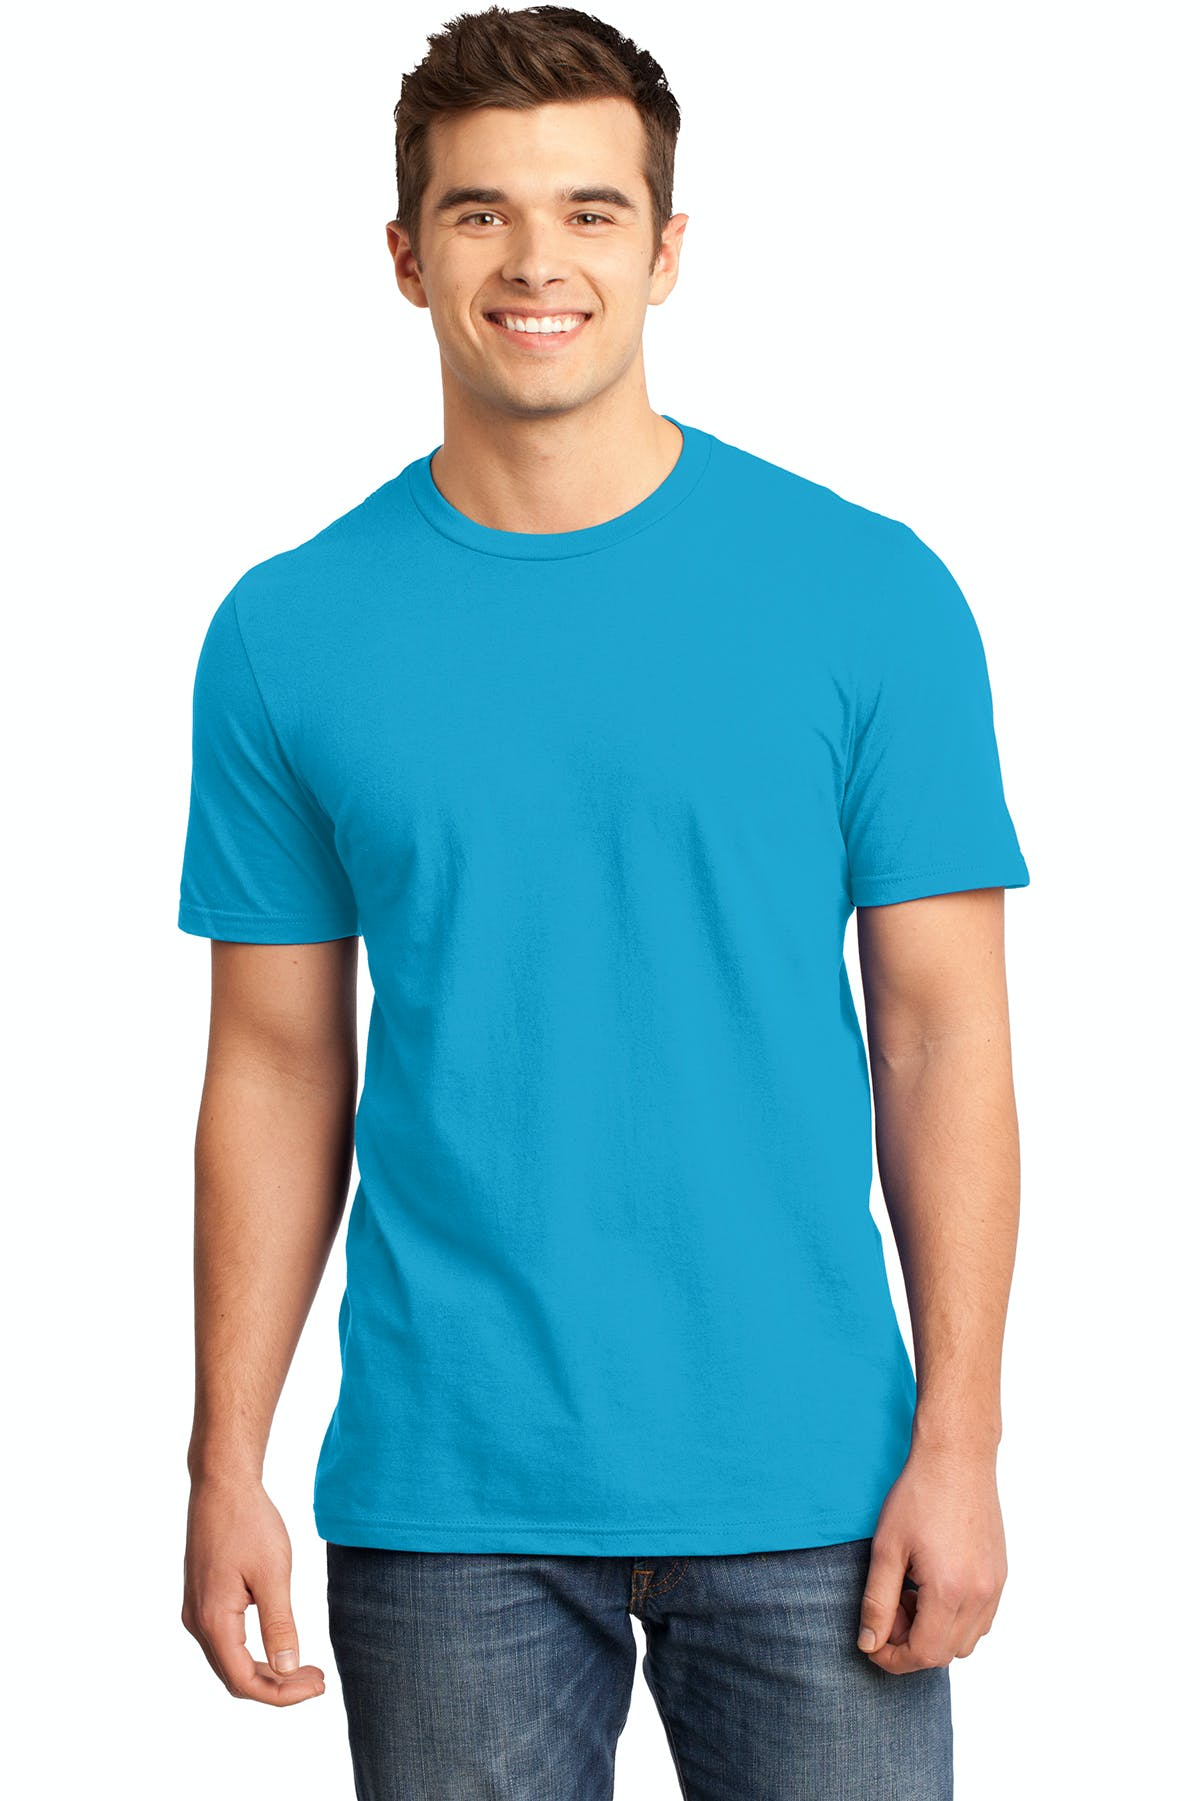 District® - Young Mens Very Important Tee® - sold by PRINT CITY GRAPHICS, INC